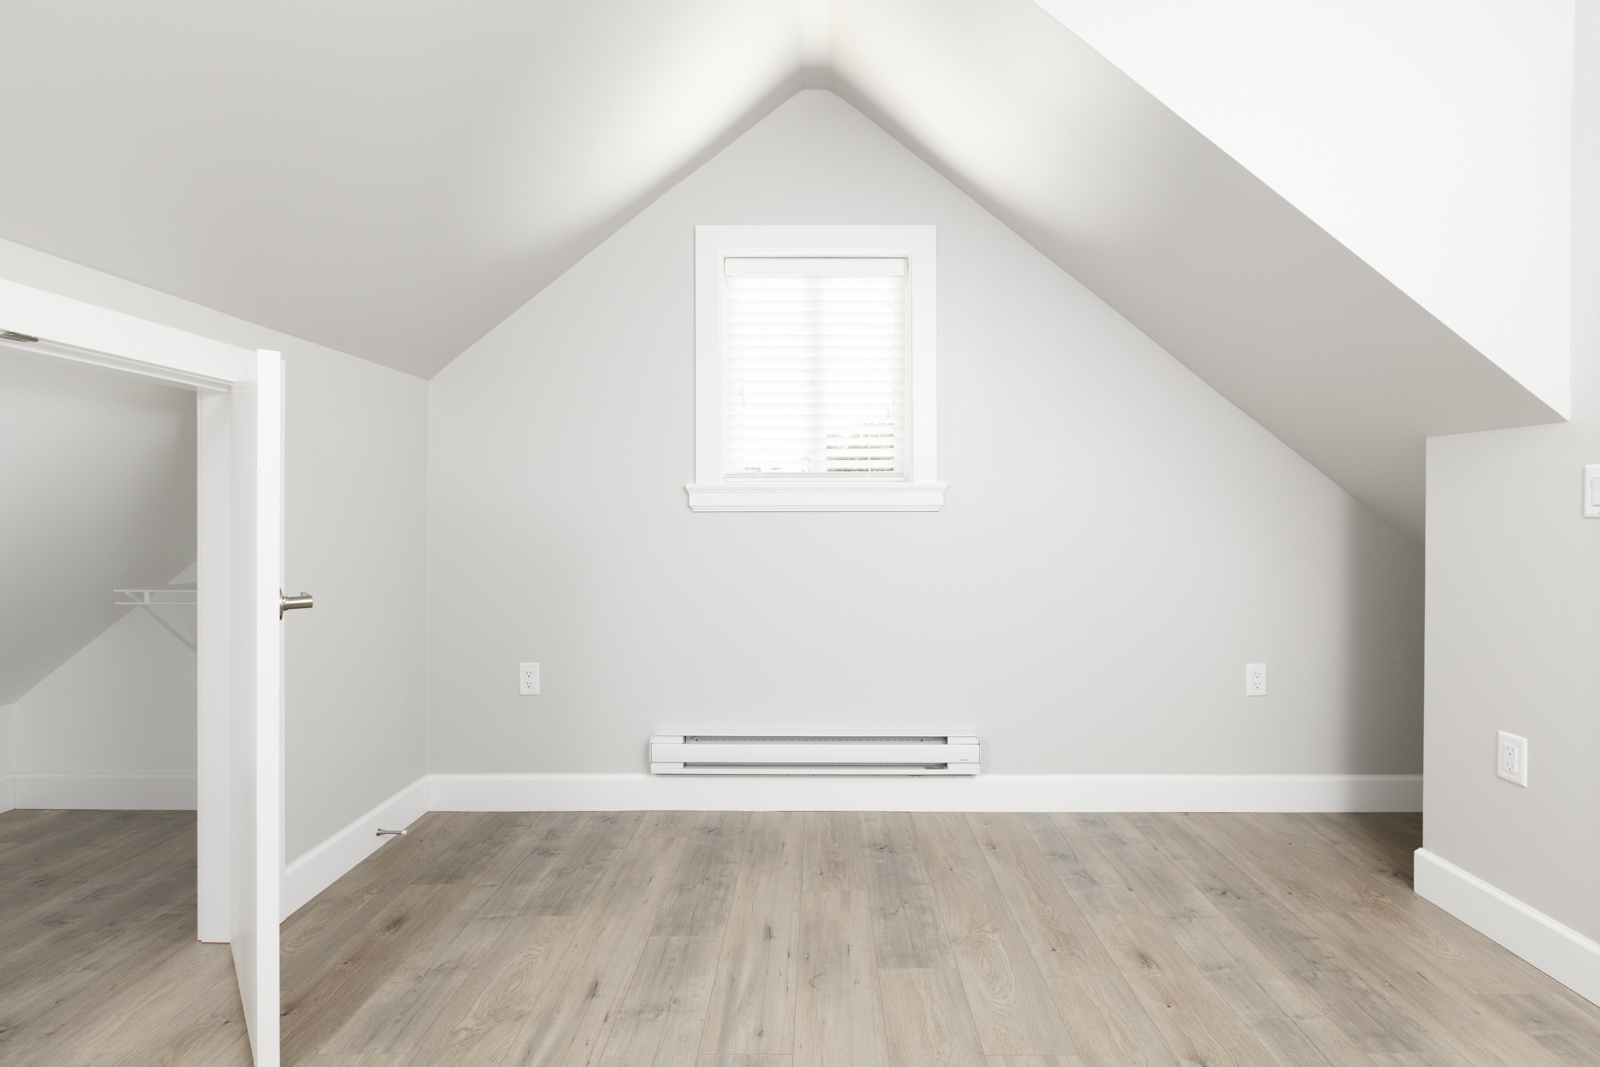 Uppermost floor of Vancouver unfurnished rental with sloped ceiling.